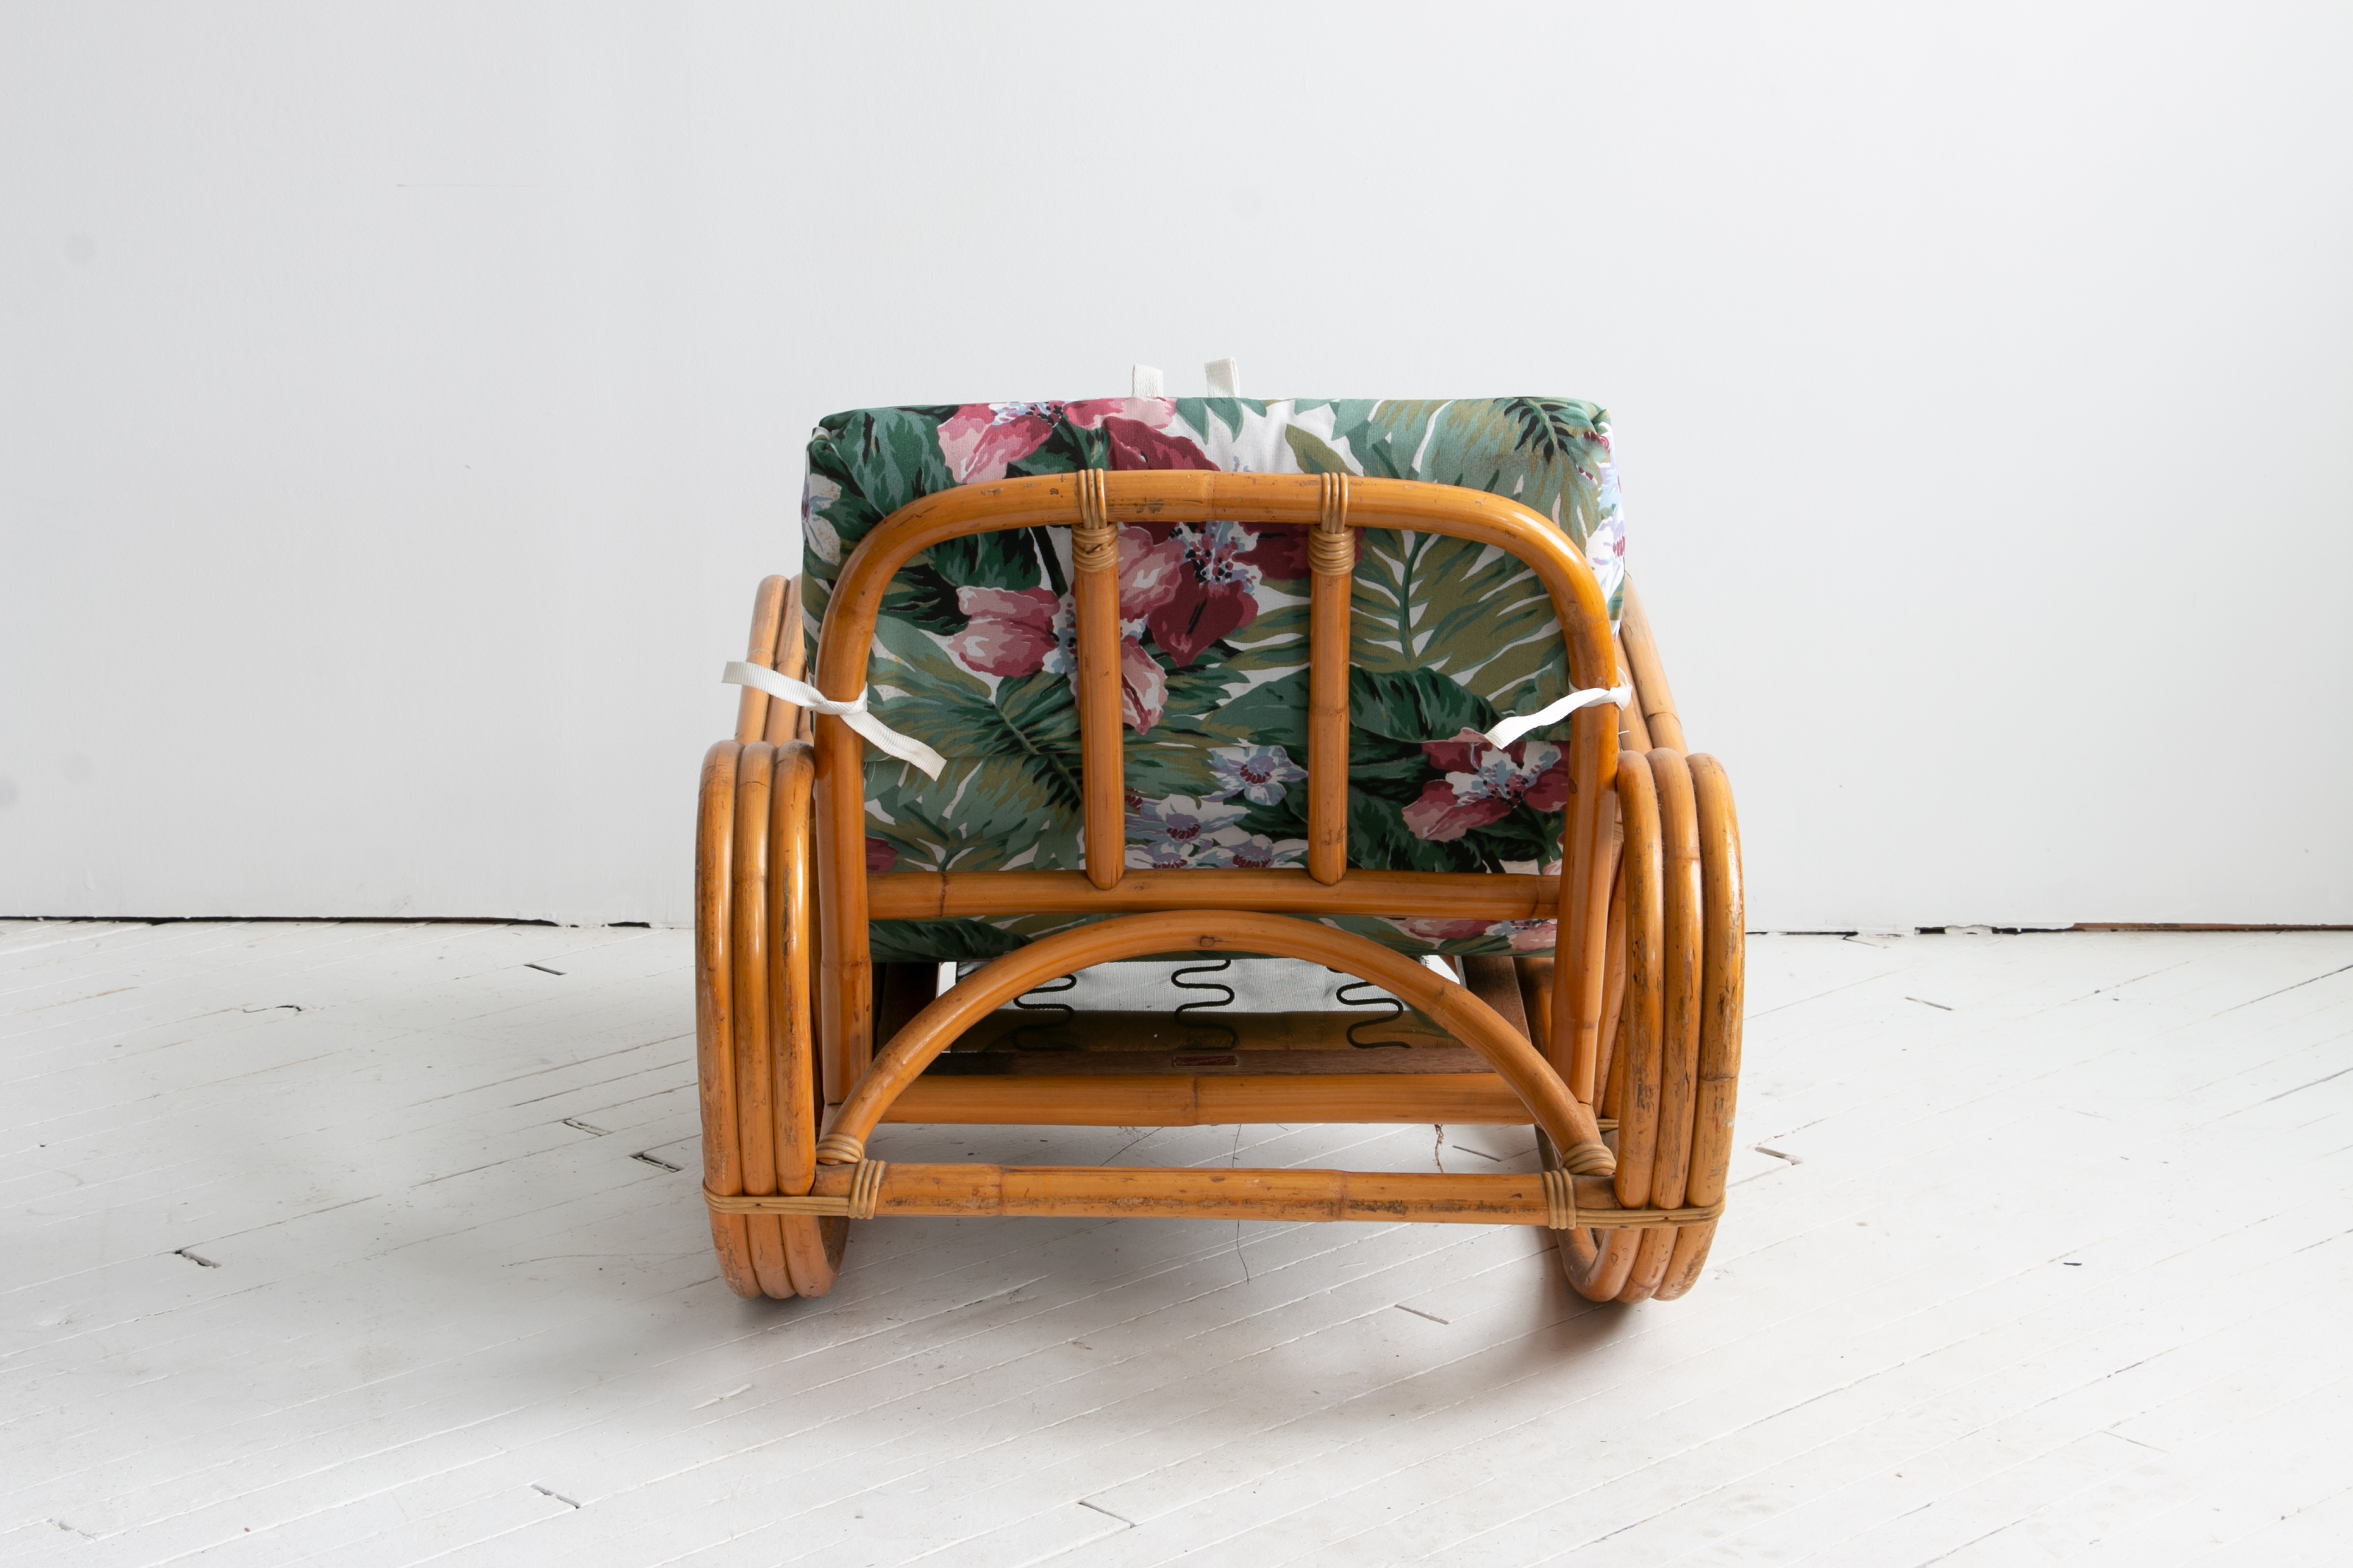 Vintage Rattan Lounge Rocking Chair with Side Table, Durattan Brand